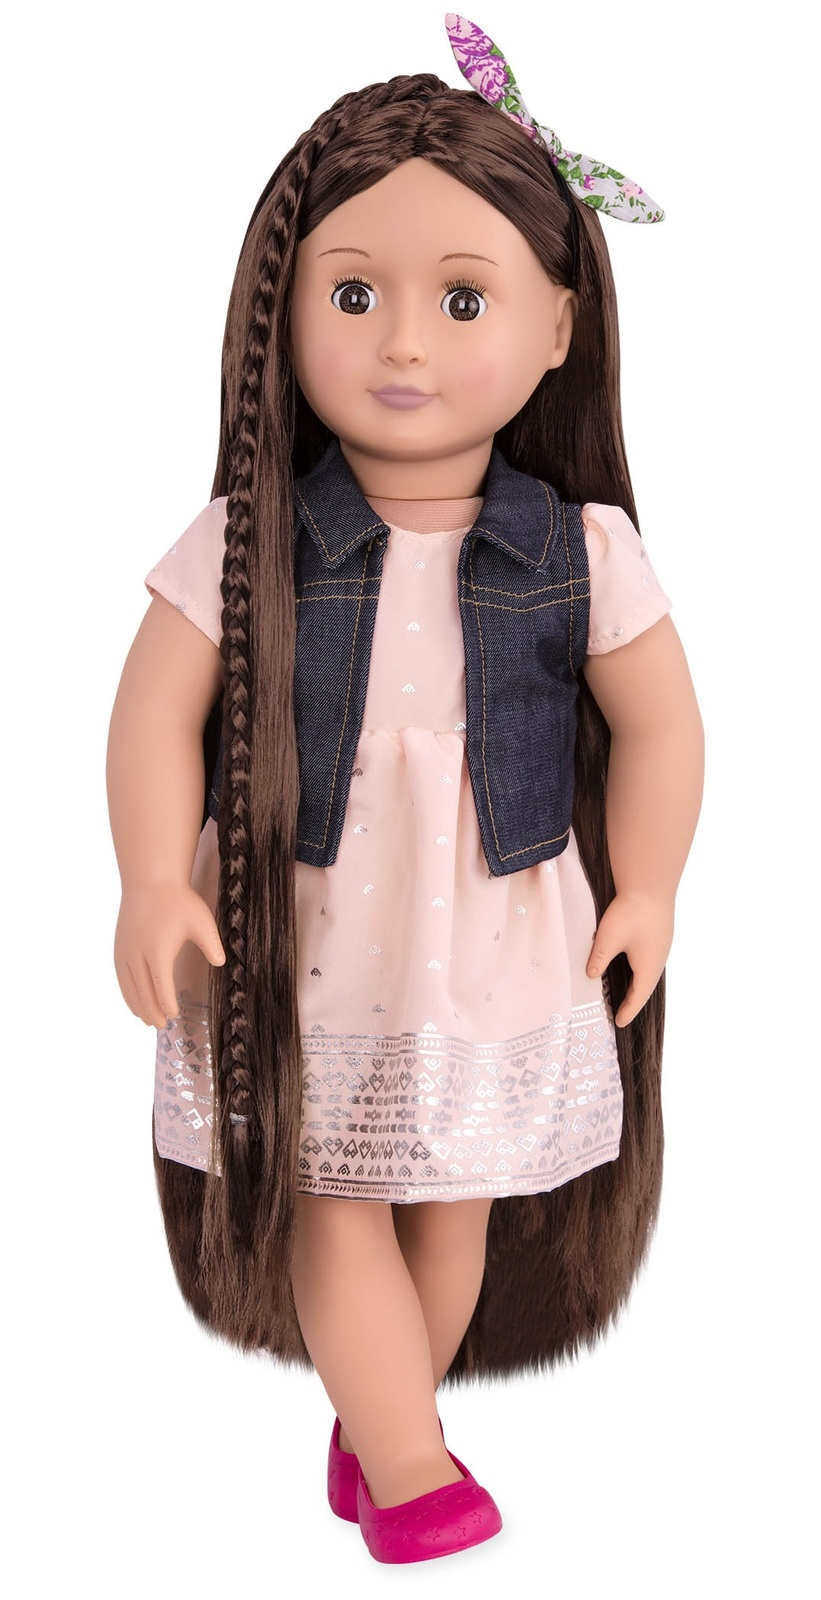 """Our Generation: 18"""" Hairgrow Doll - Kaelyn image"""